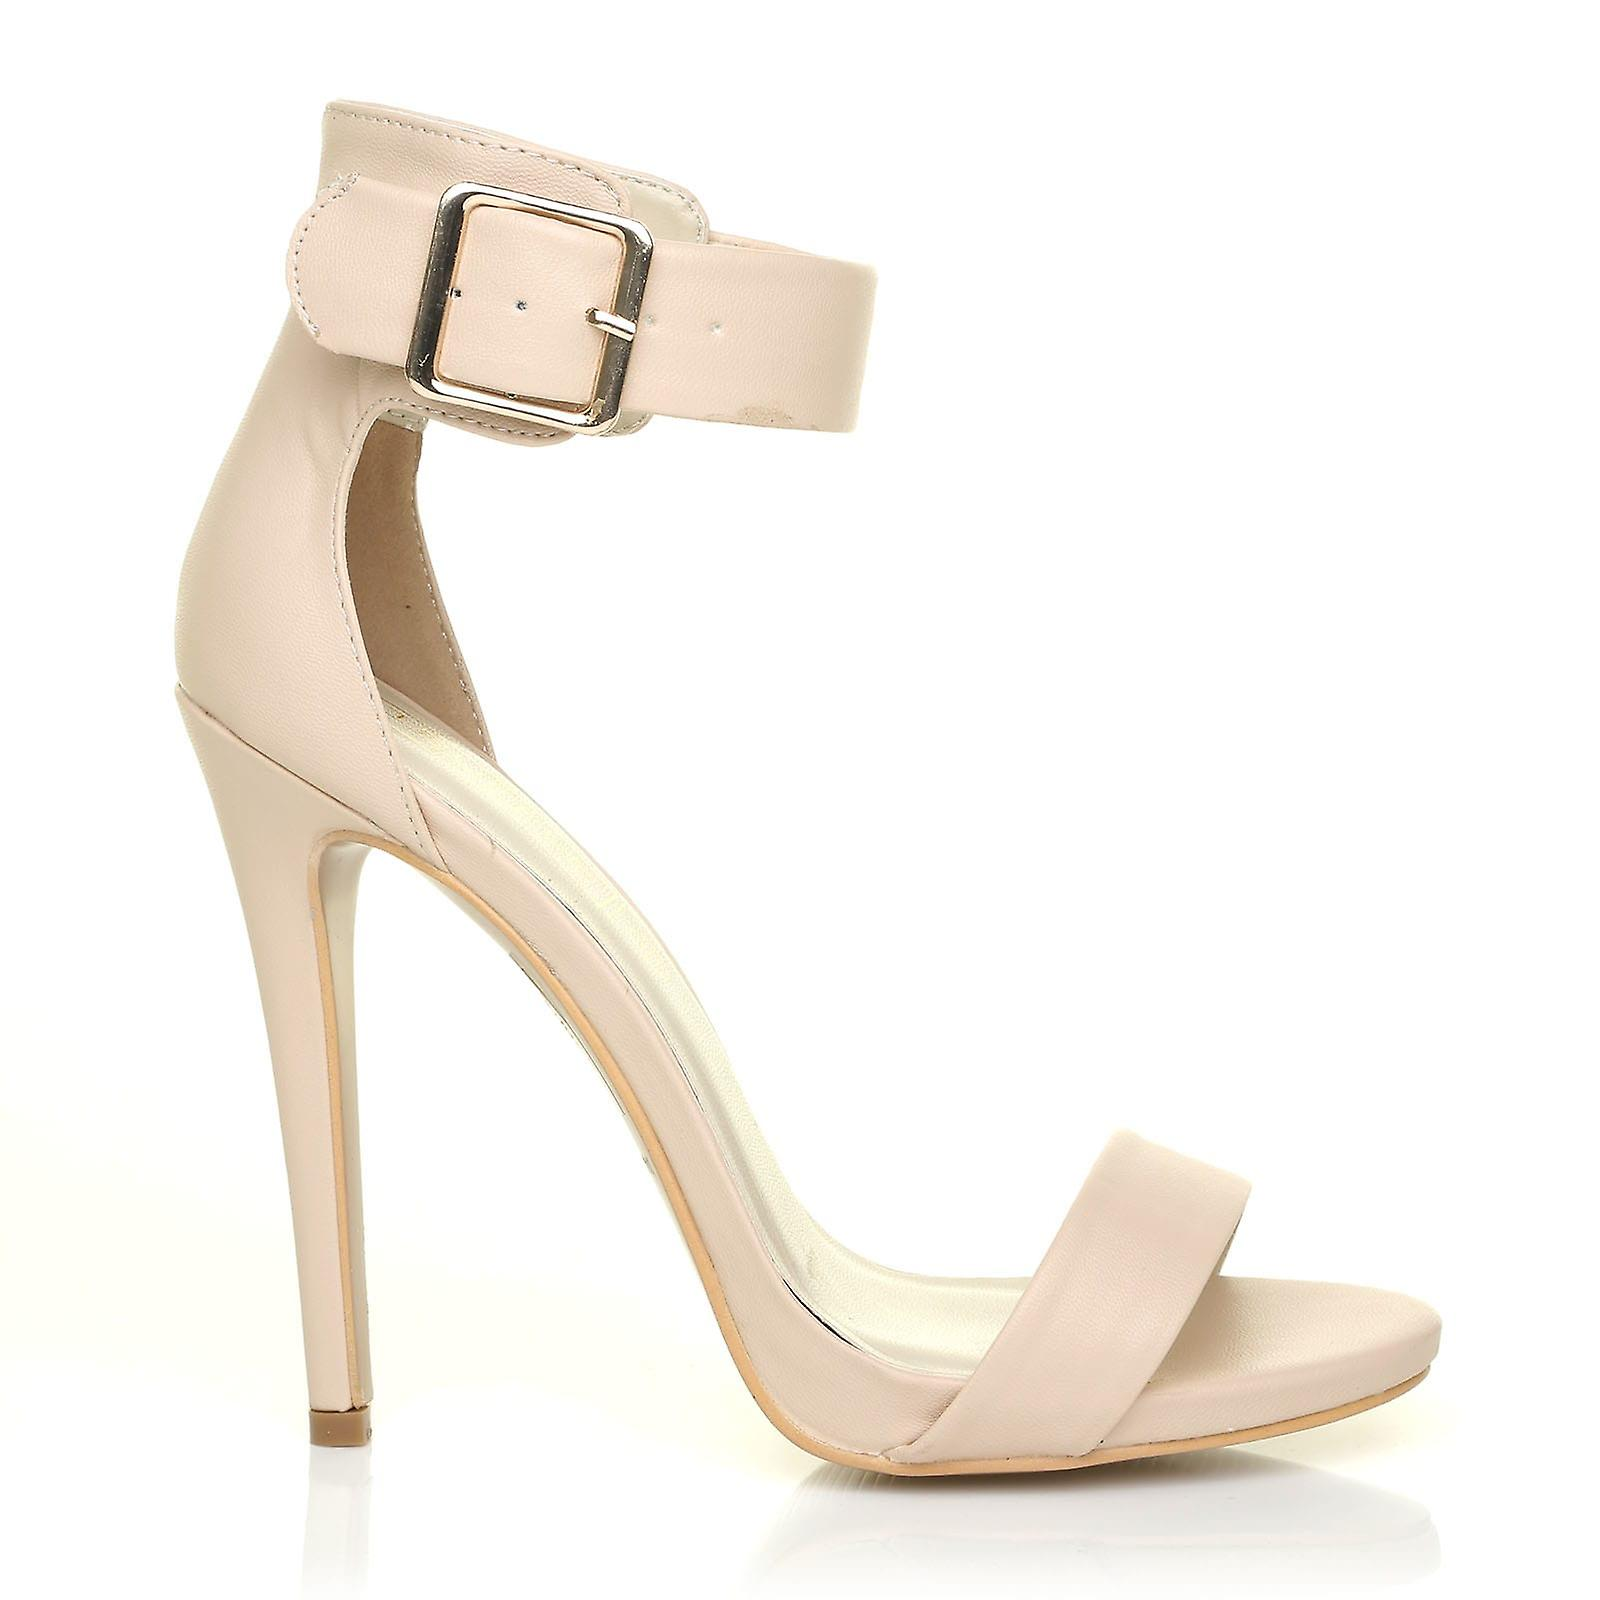 High Heel Leather Stiletto Barely KIM Nude Sandals PU There qYqwBS0